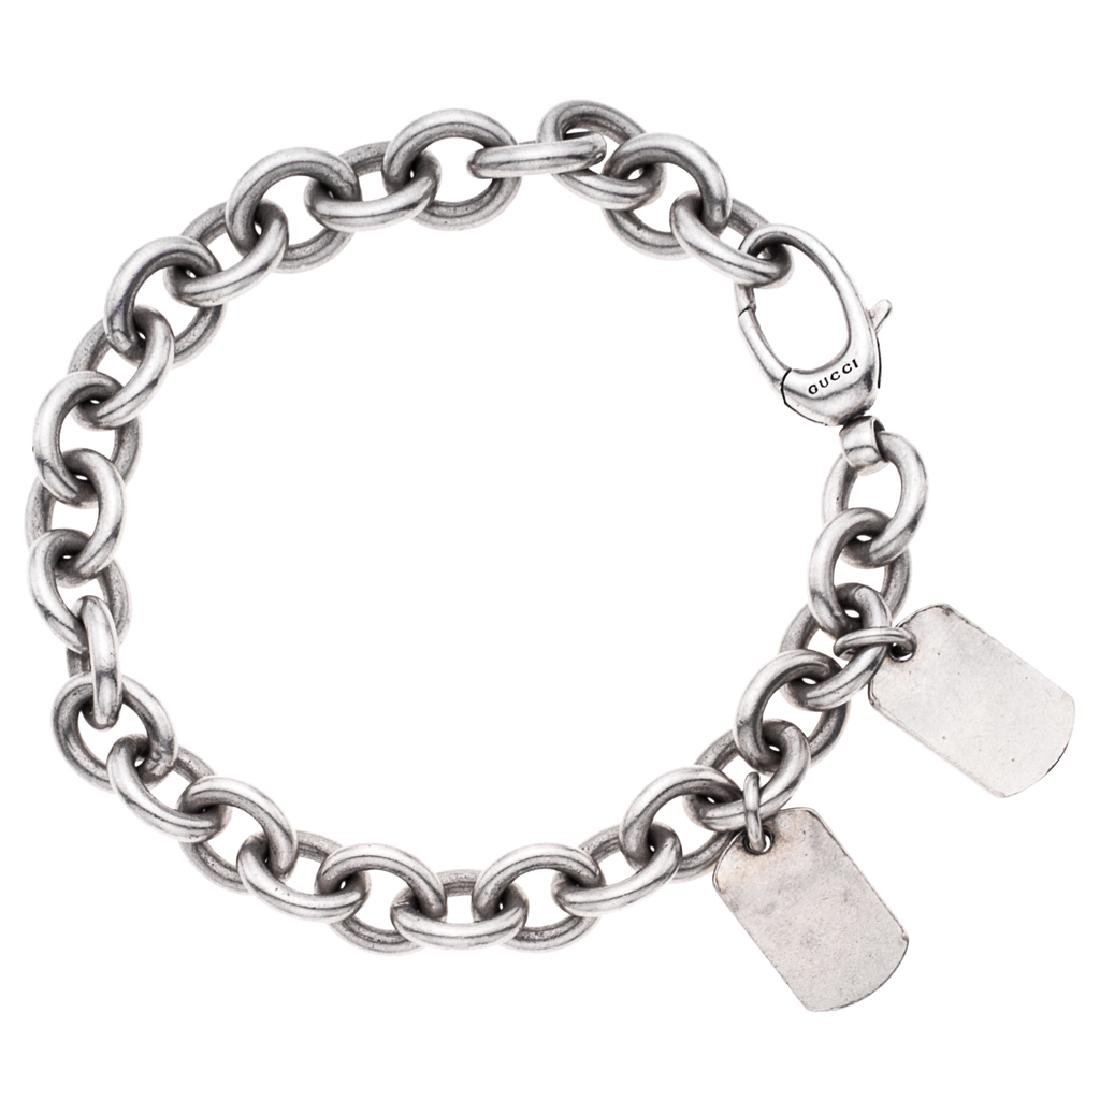 A GUCCI sterling silver bracelet. Weight: 63.9 g.